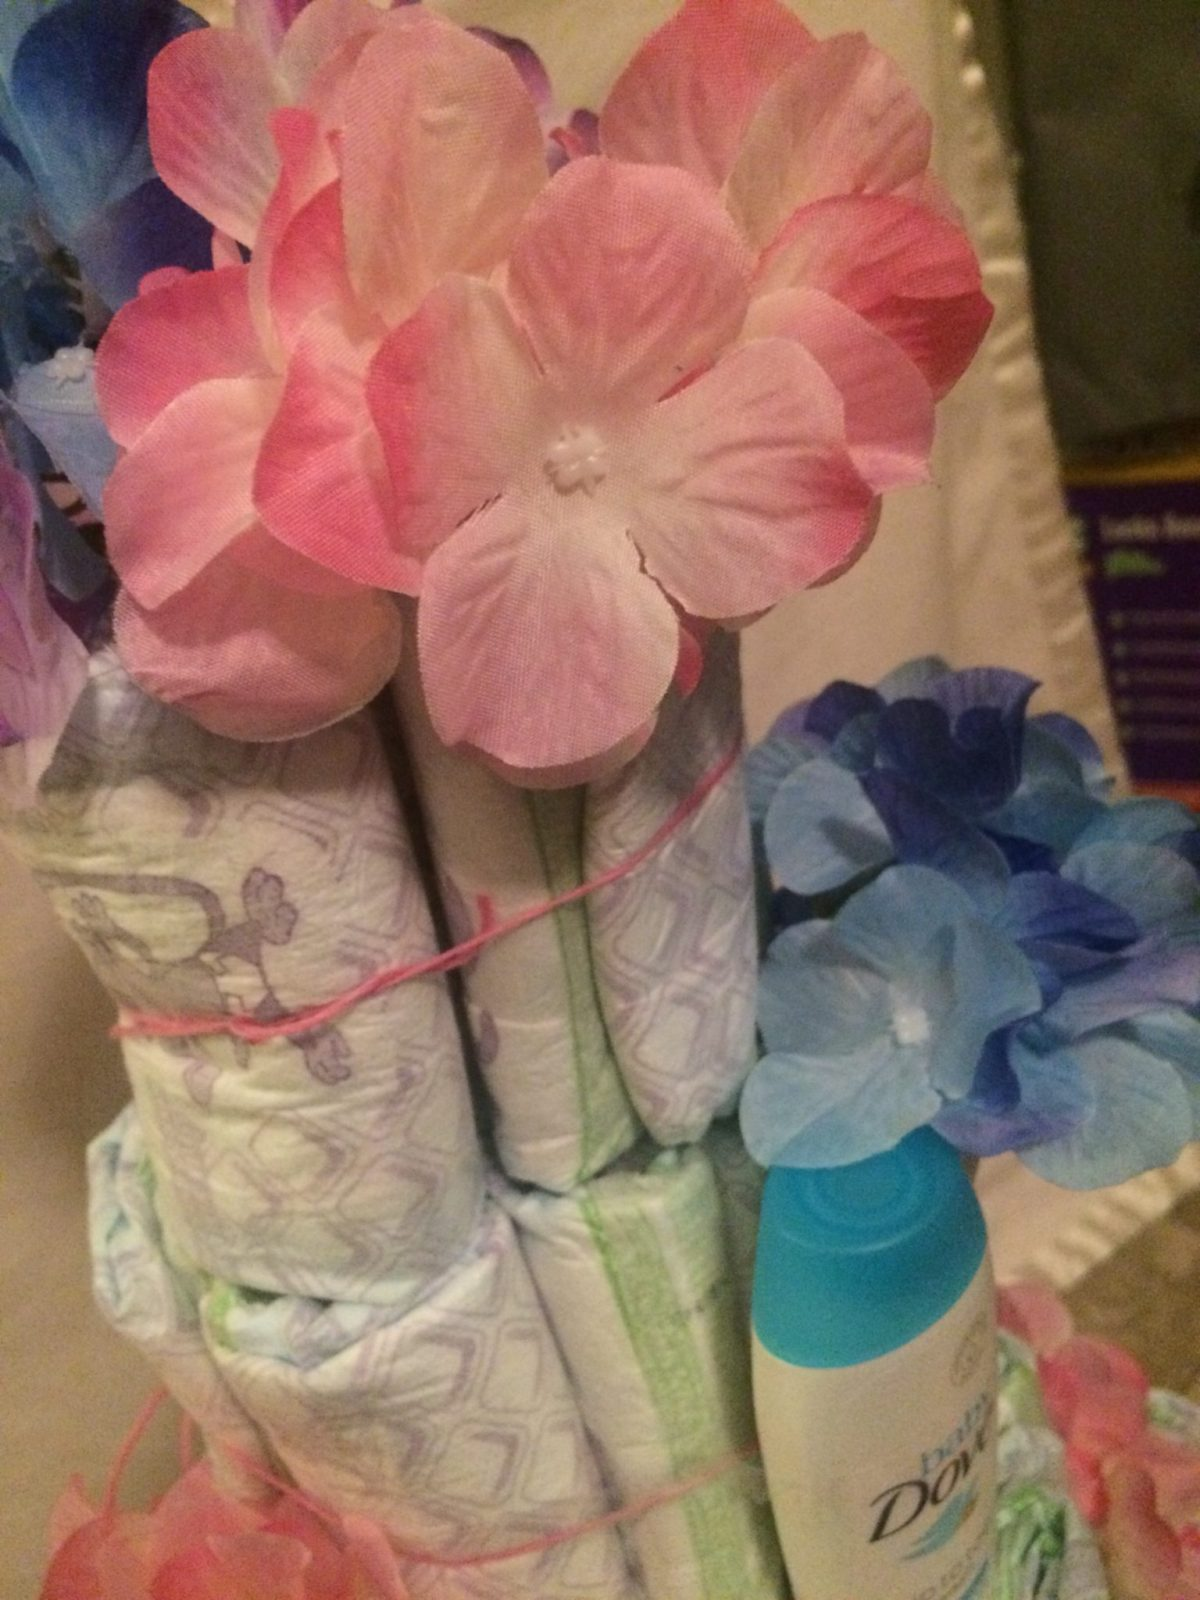 This Diaper Cakes Are An Awesome Gift To Bring To